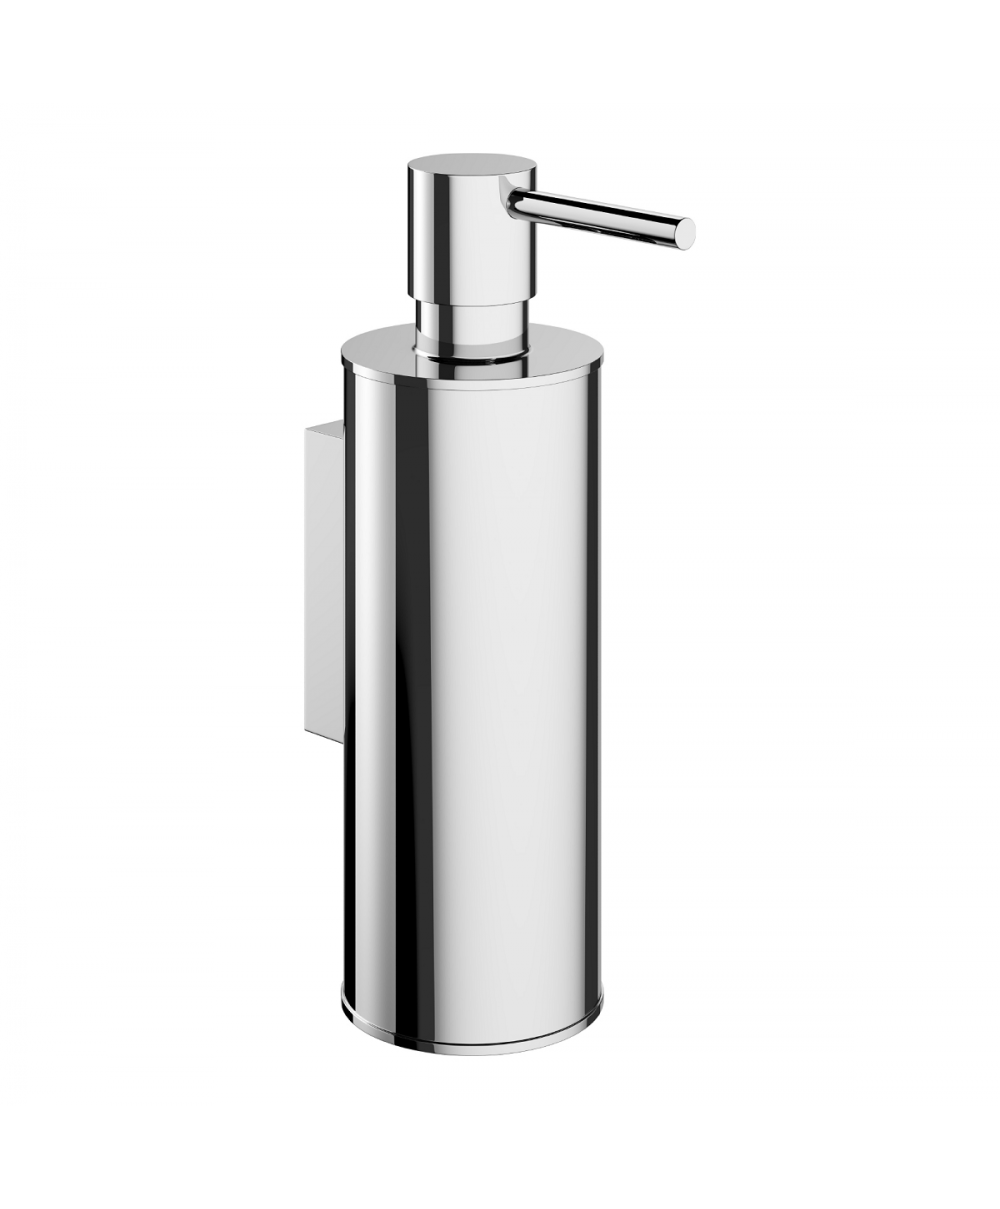 Crosswater Mpro Wall Mounted Soap Dispenser Pro011c